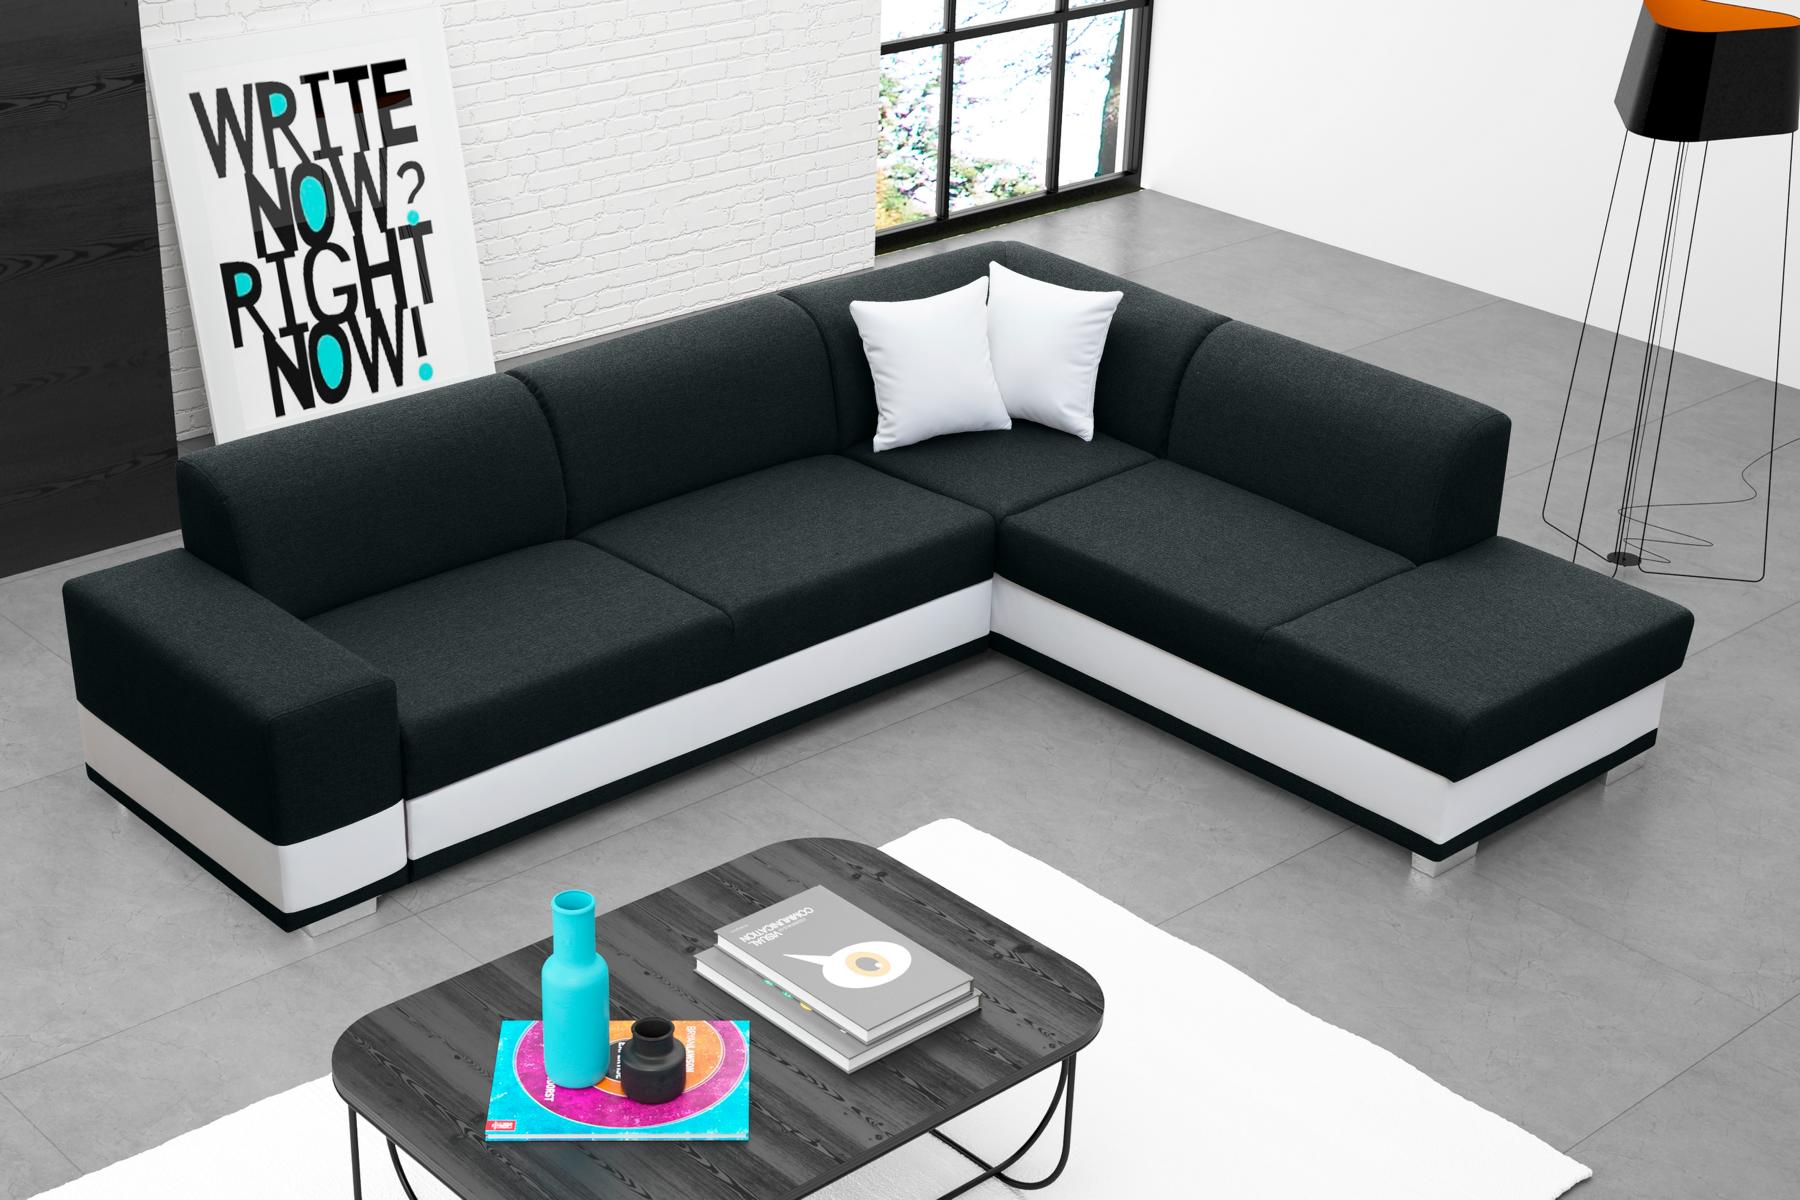 sofas ledersofa darco mit bettfunktion bettkasten ecksofa schlaffunktion. Black Bedroom Furniture Sets. Home Design Ideas